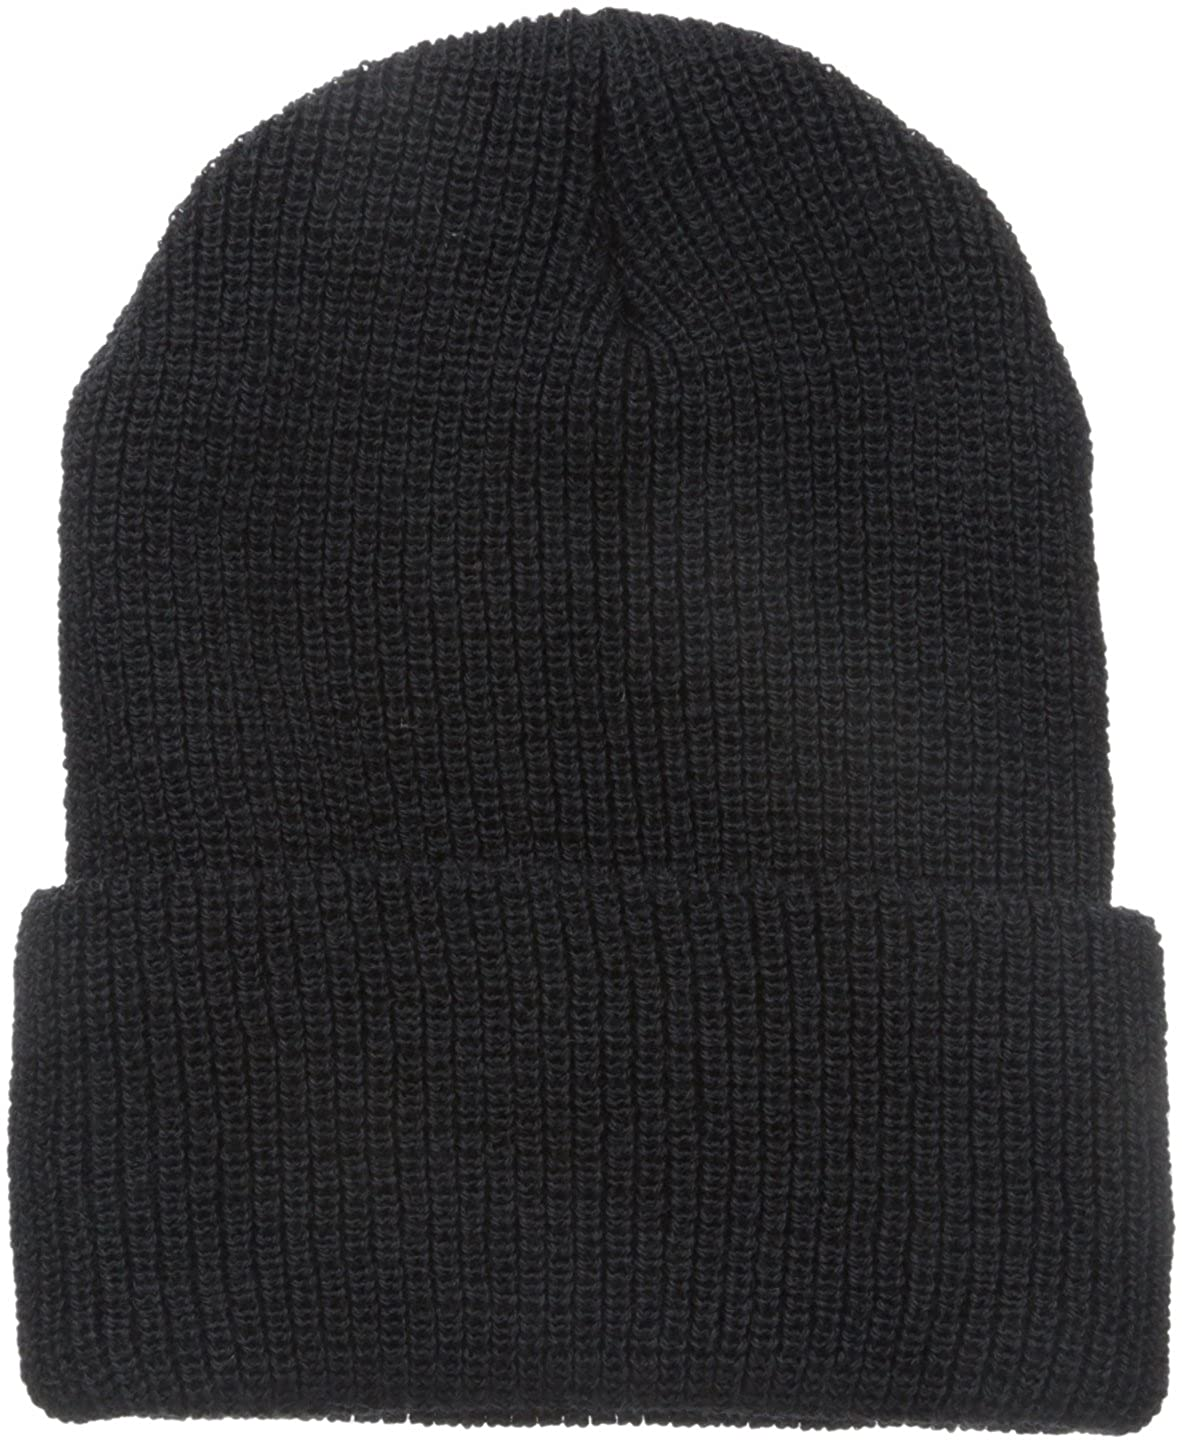 742612ac704e1 Worsted wool warmth and durability in a knit classic rolled cuff watch cap.  Proven fit and reliable durability. Once size fits all